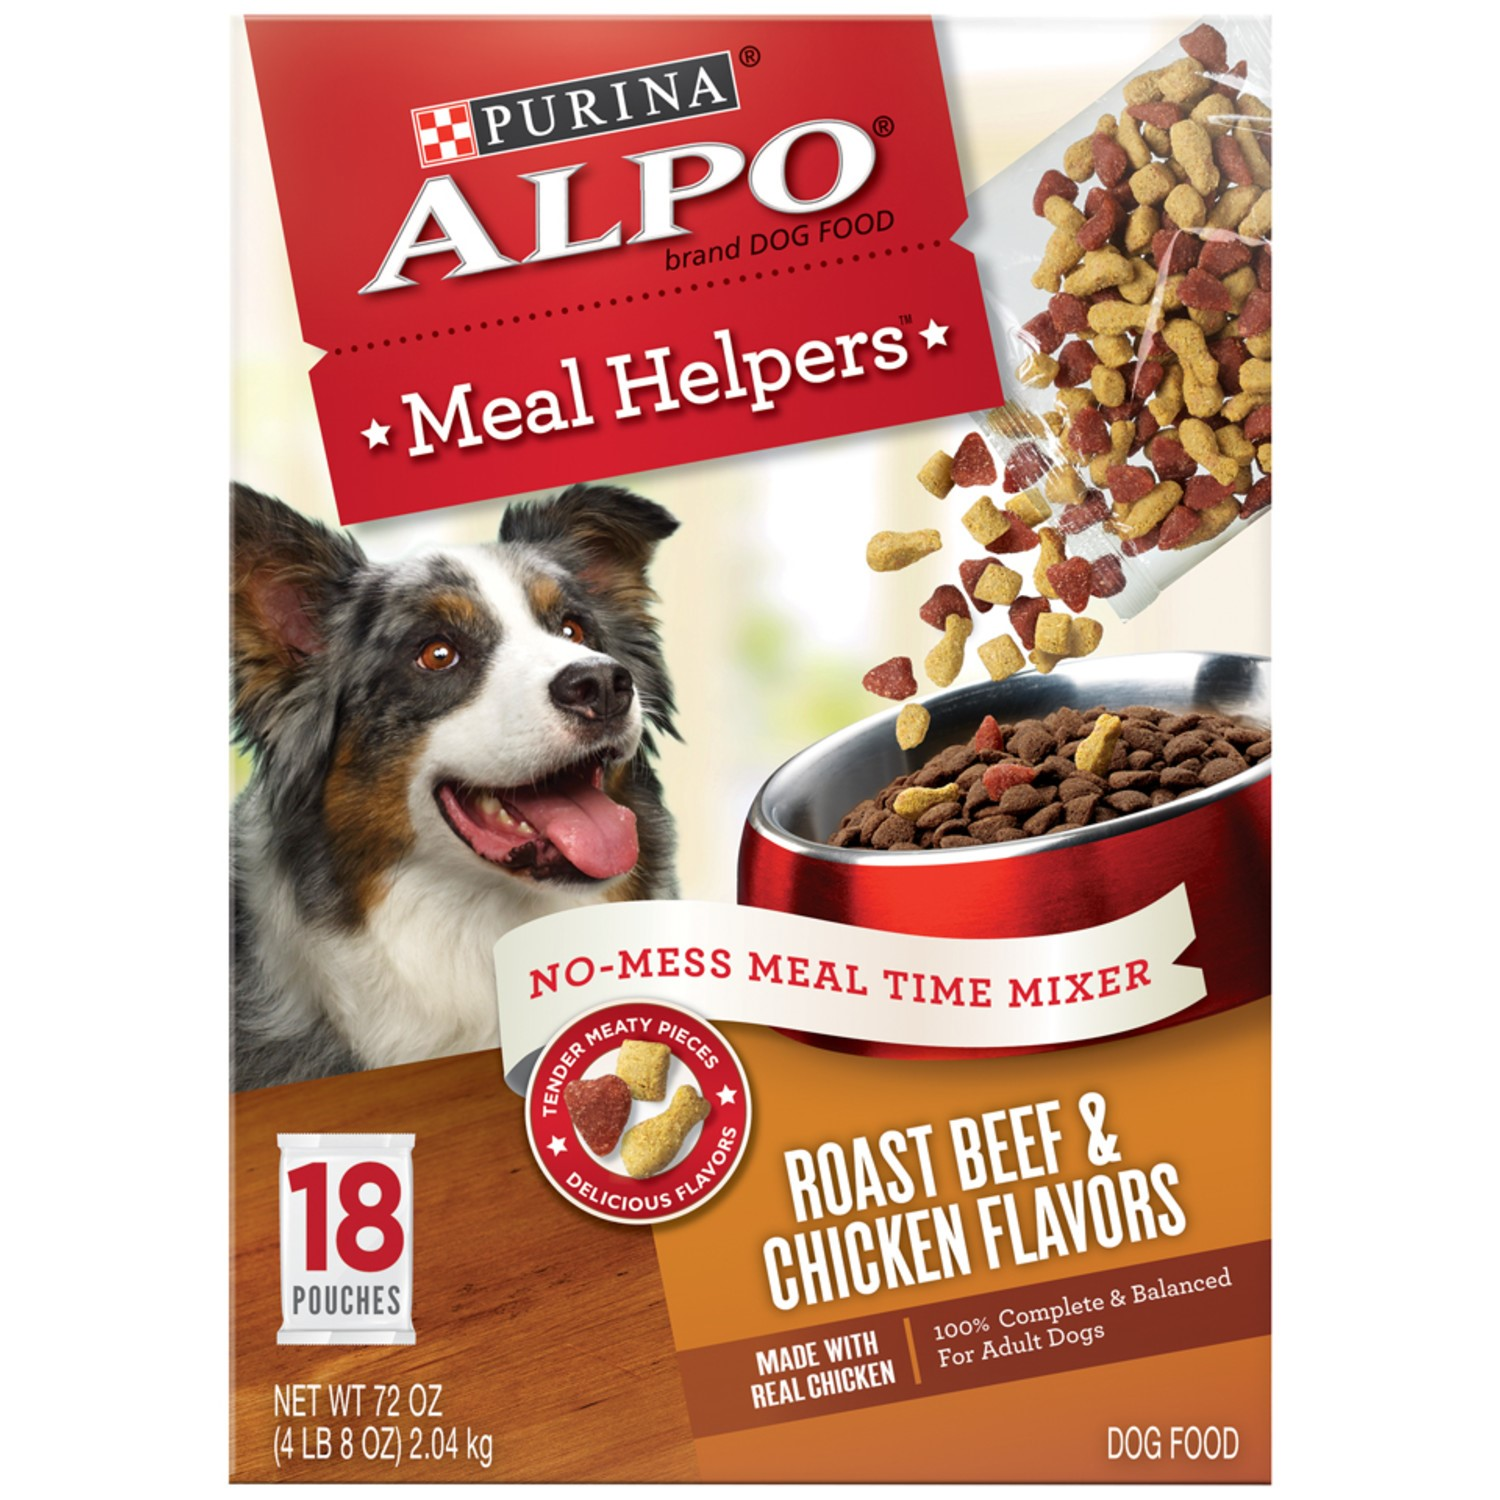 Purina ALPO Meal Helpers Roast Beef & Chicken Flavors Dog Food 18 ct Box